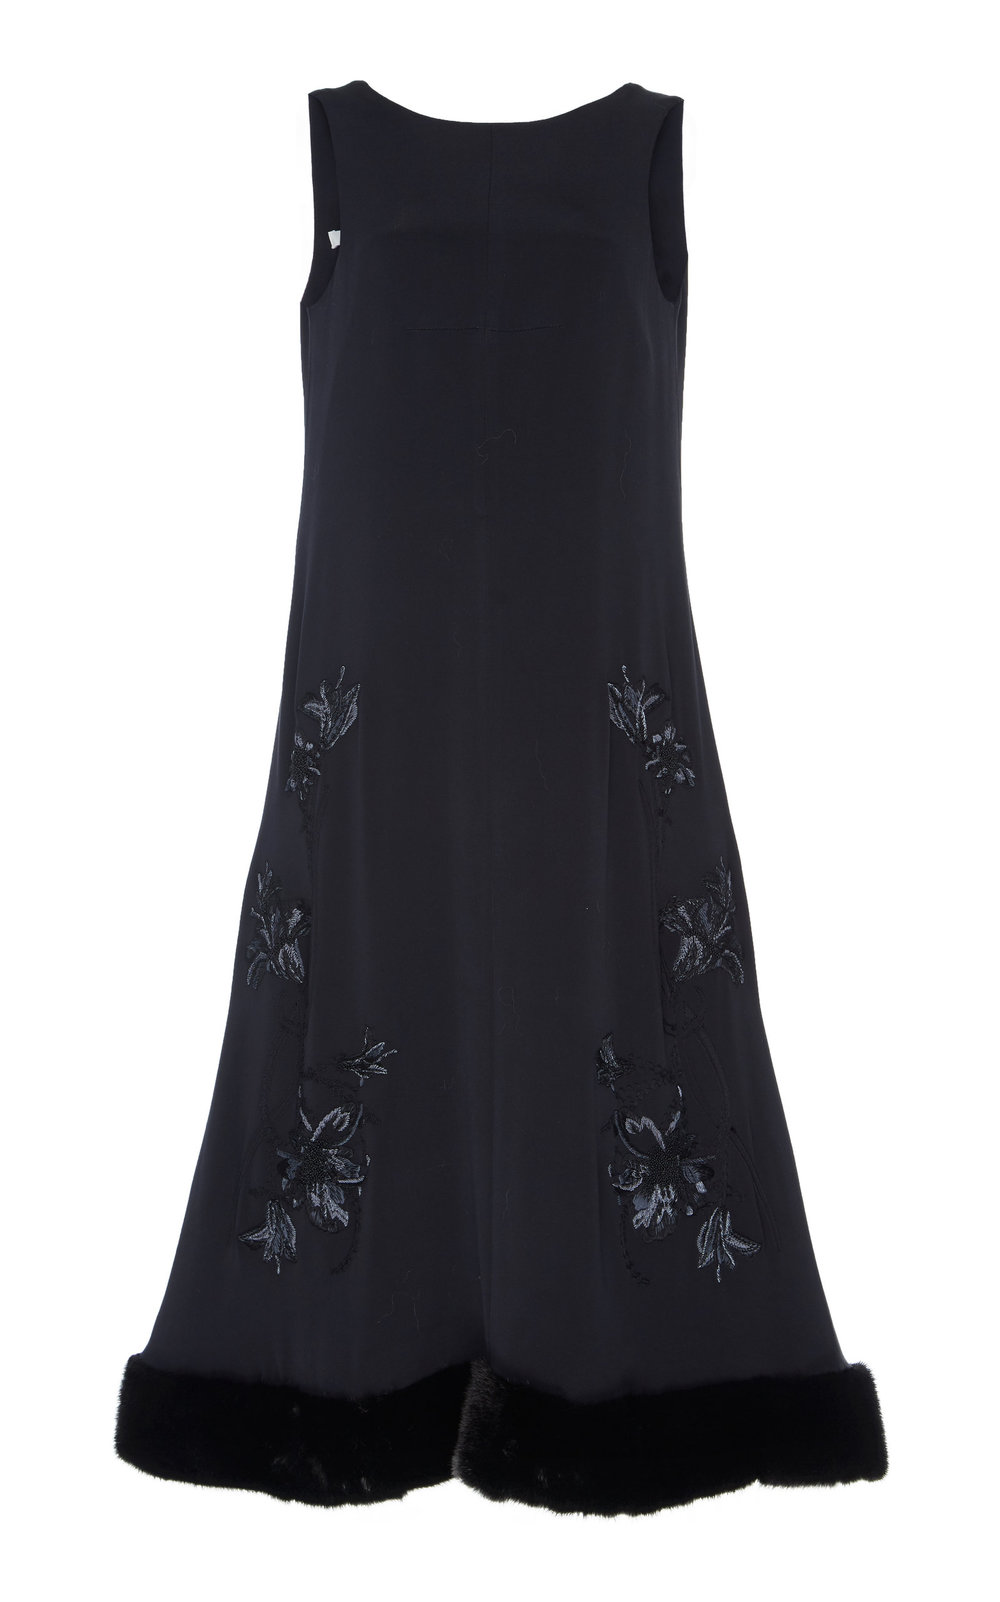 Susan Hand-embroidered Dress - BLACK  With the perfect calf length, this dress is highly elegant. Made from sumptuous Silk, it features a sleeveless A-line silhouette and rounded neck cut. Delicate hand-embroidery design and Faux Fur trimmed hemline create a glamorous look.